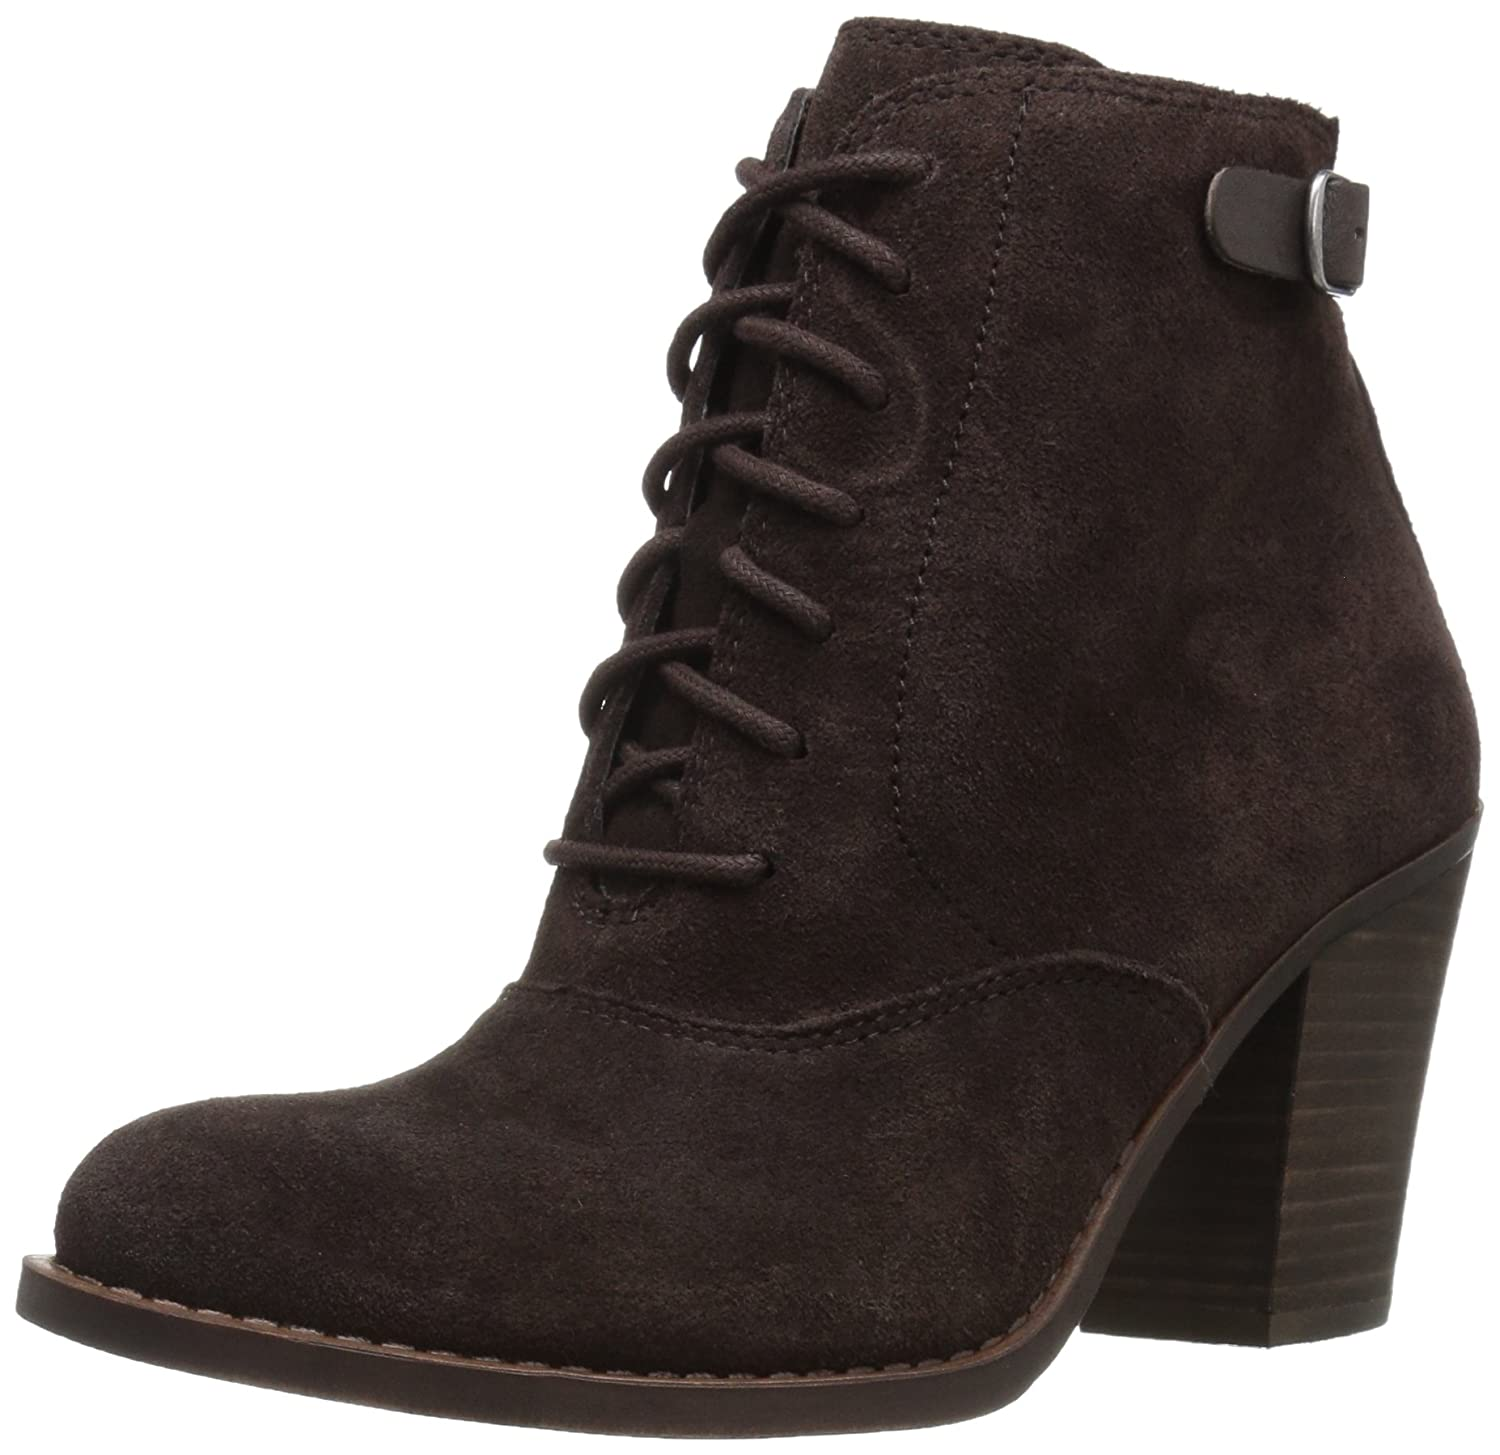 Lucky Brand Women's Echoh Ankle Bootie B01FXC2A7K 7.5 B(M) US|Java